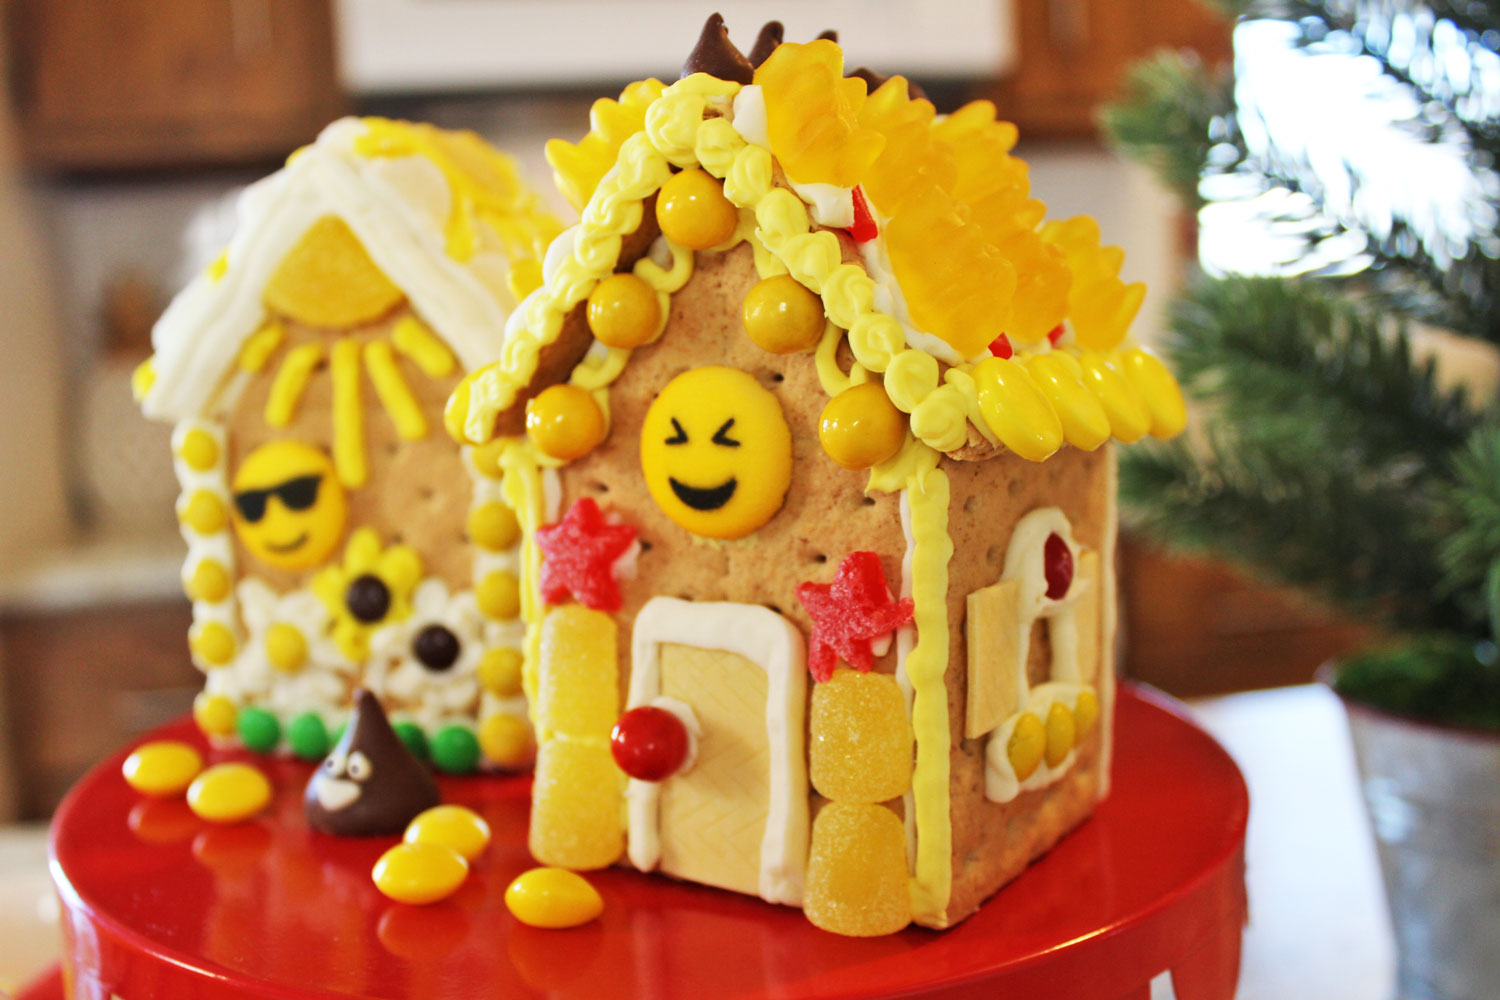 Emoji Party Ideas Gingerbread House DIY Build Decorate Kit With